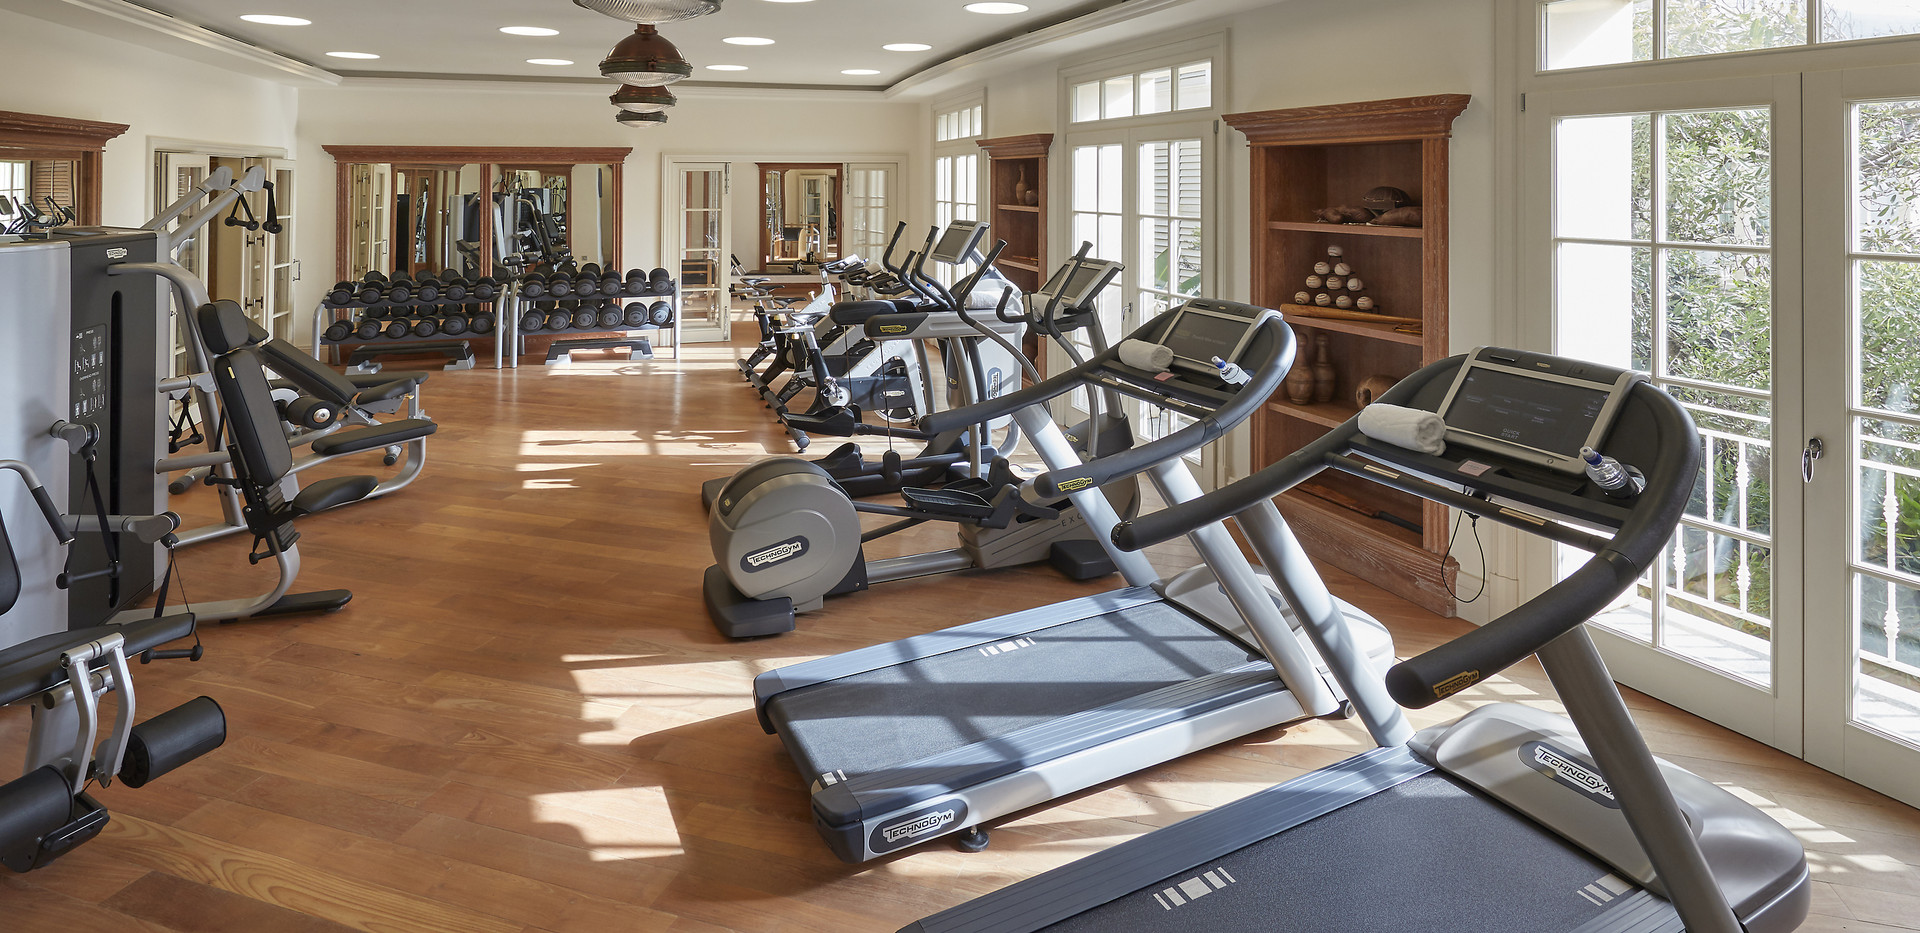 canouan-luxury-spa-fitness-centre.jpg